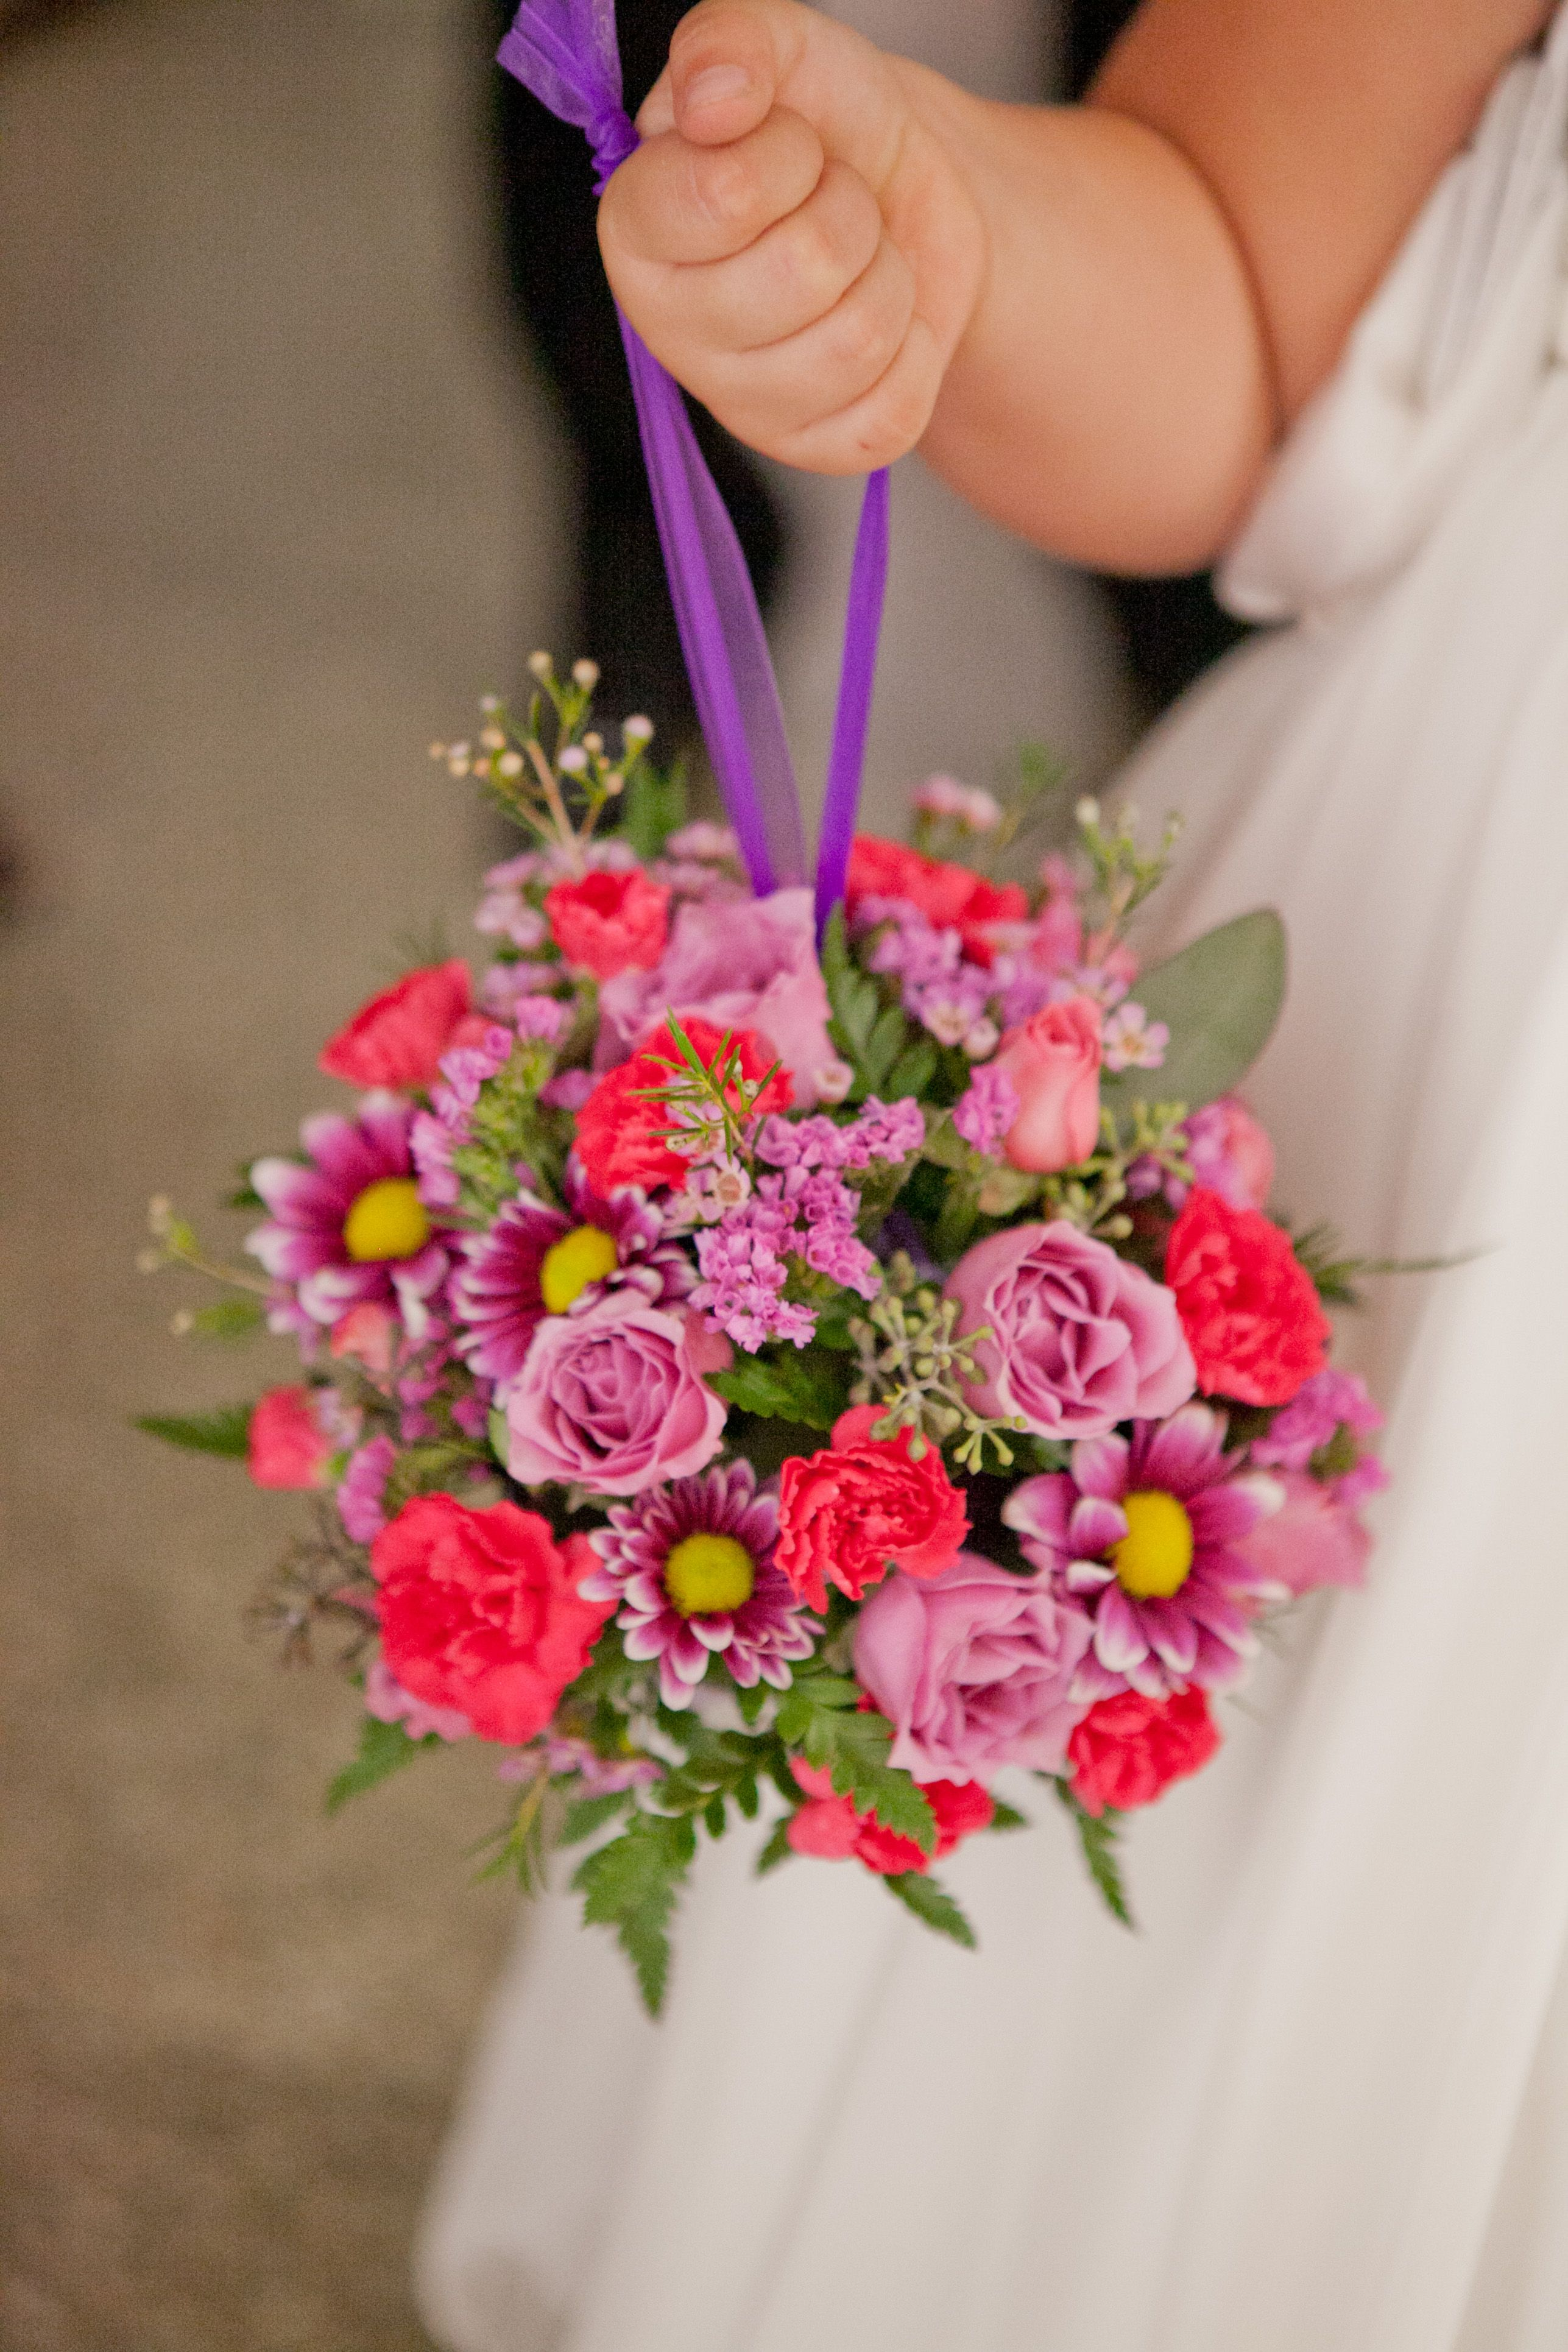 Easy to carry bouquet! Photo by Megan. bridalbouquets